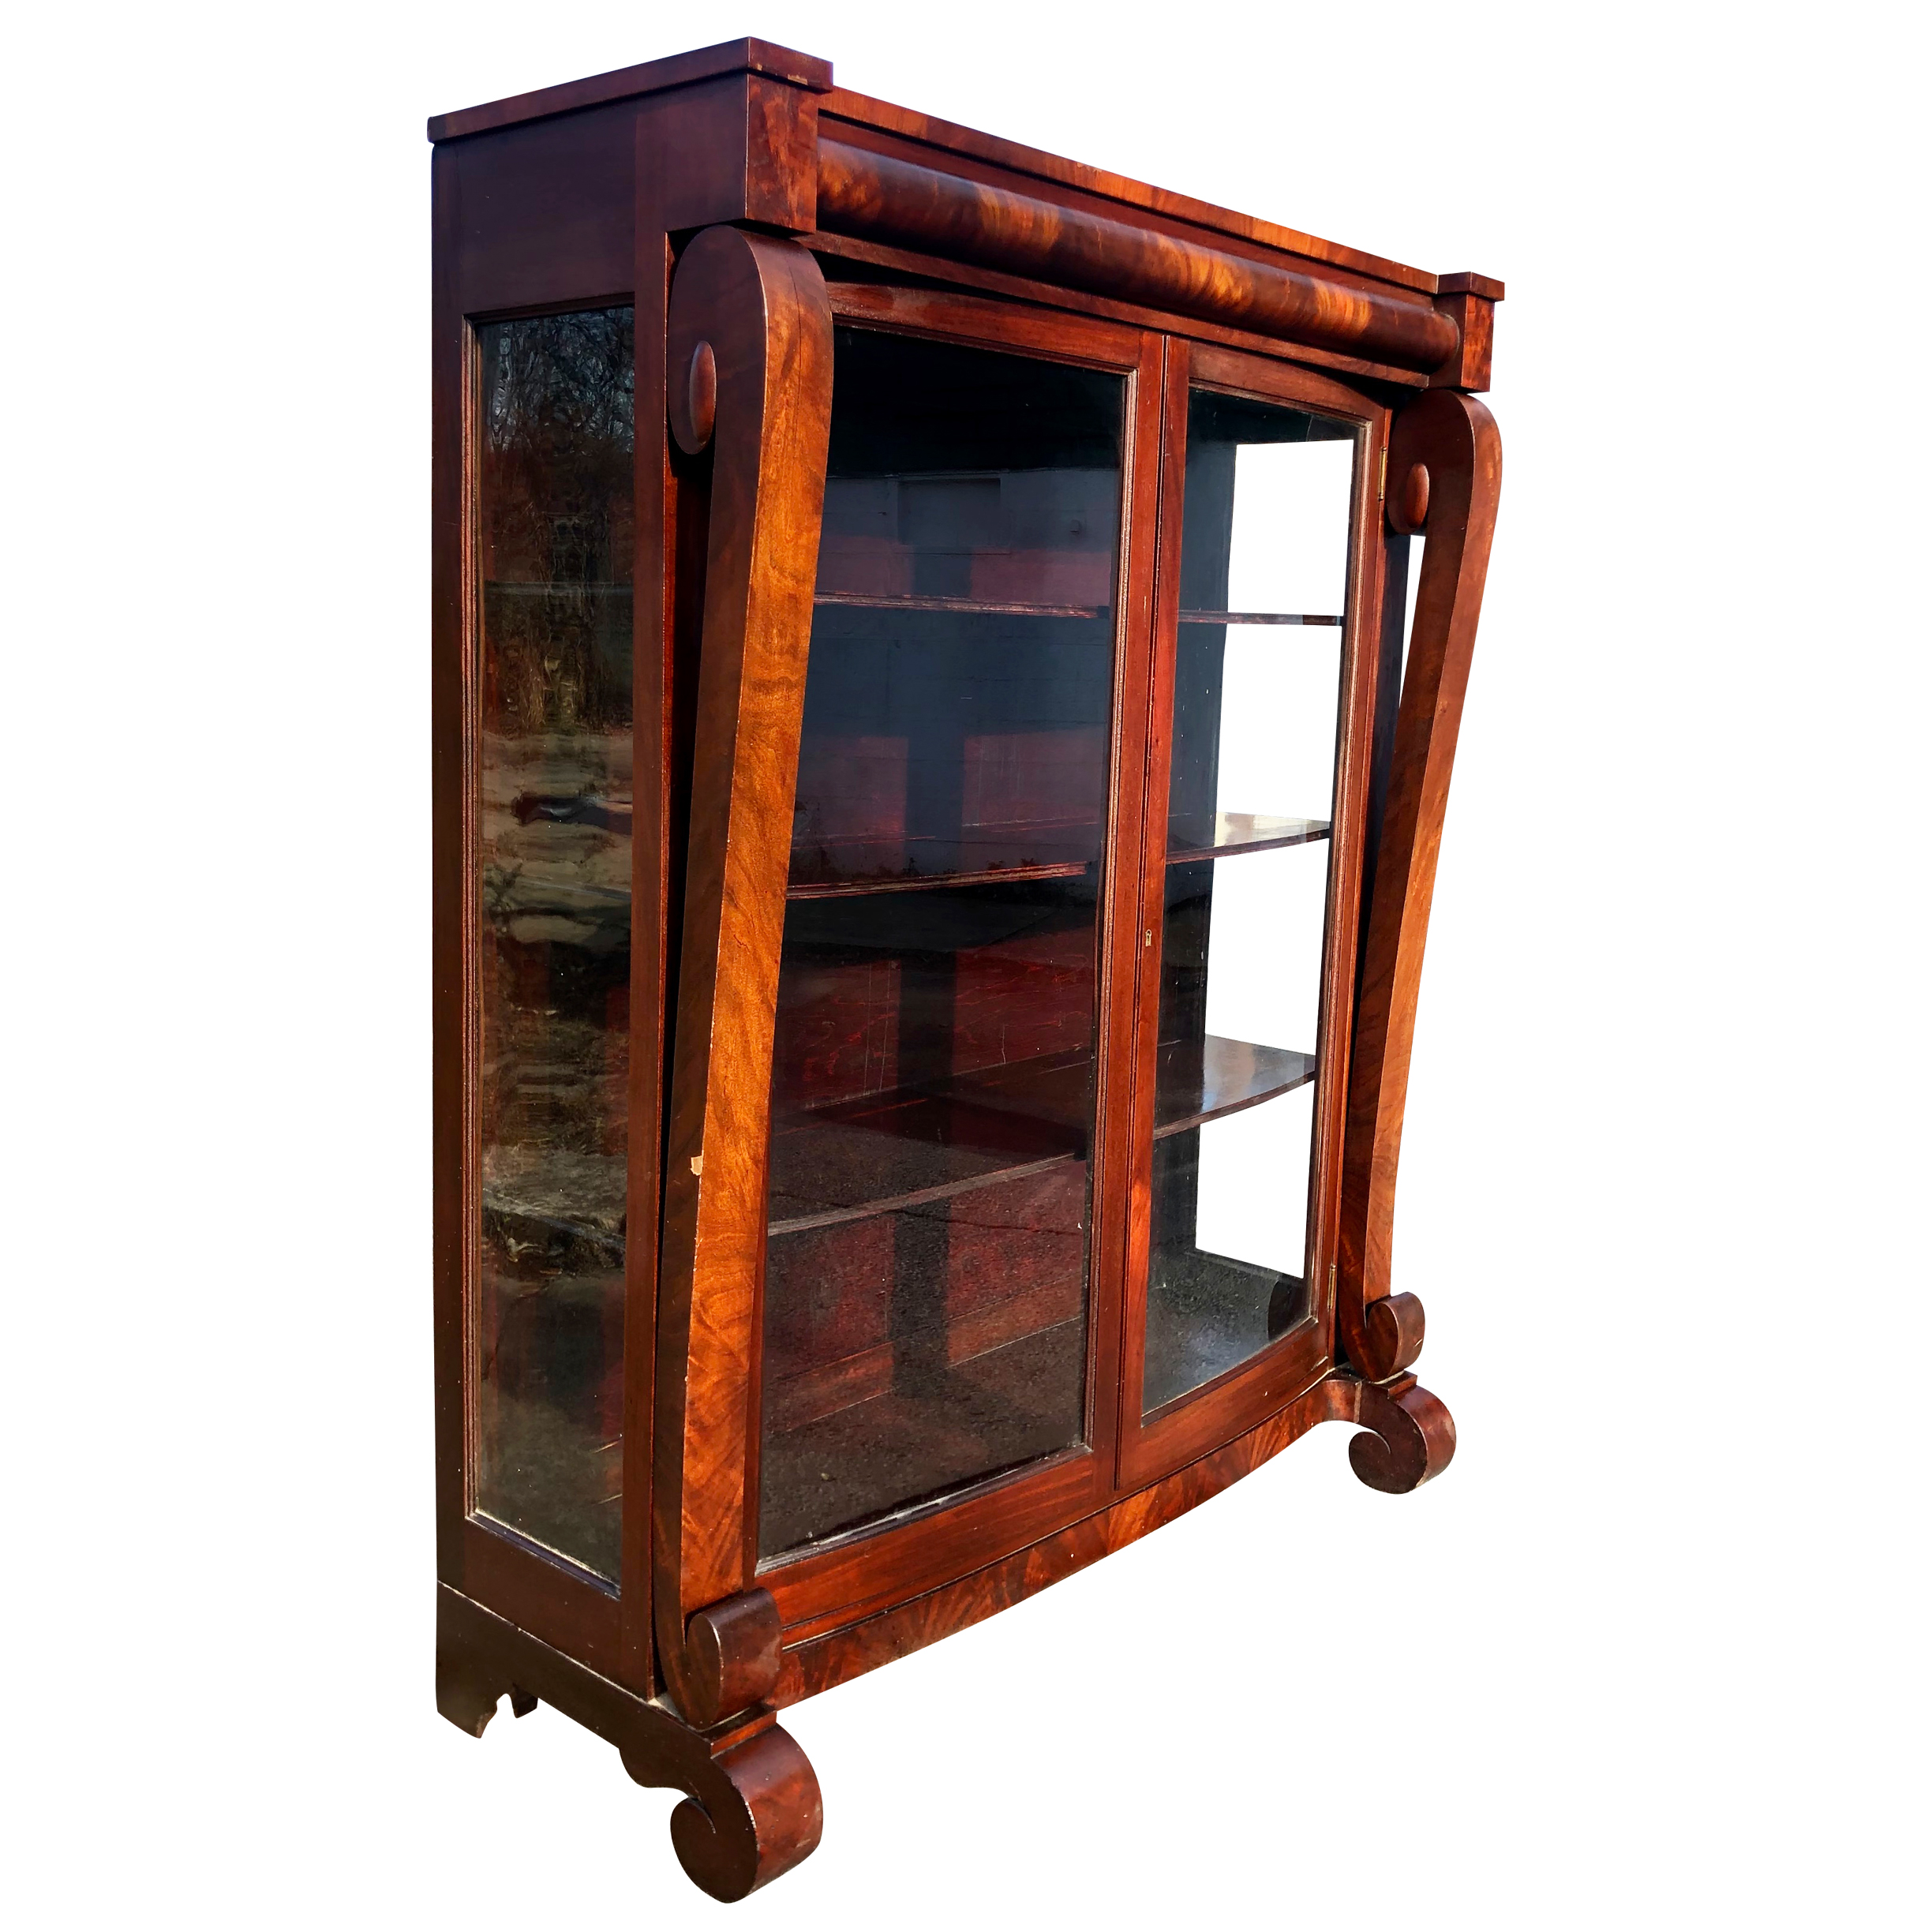 Antique American Empire Flame Mahogany Bookcase Curio Cabinet By Royal Furniture Co